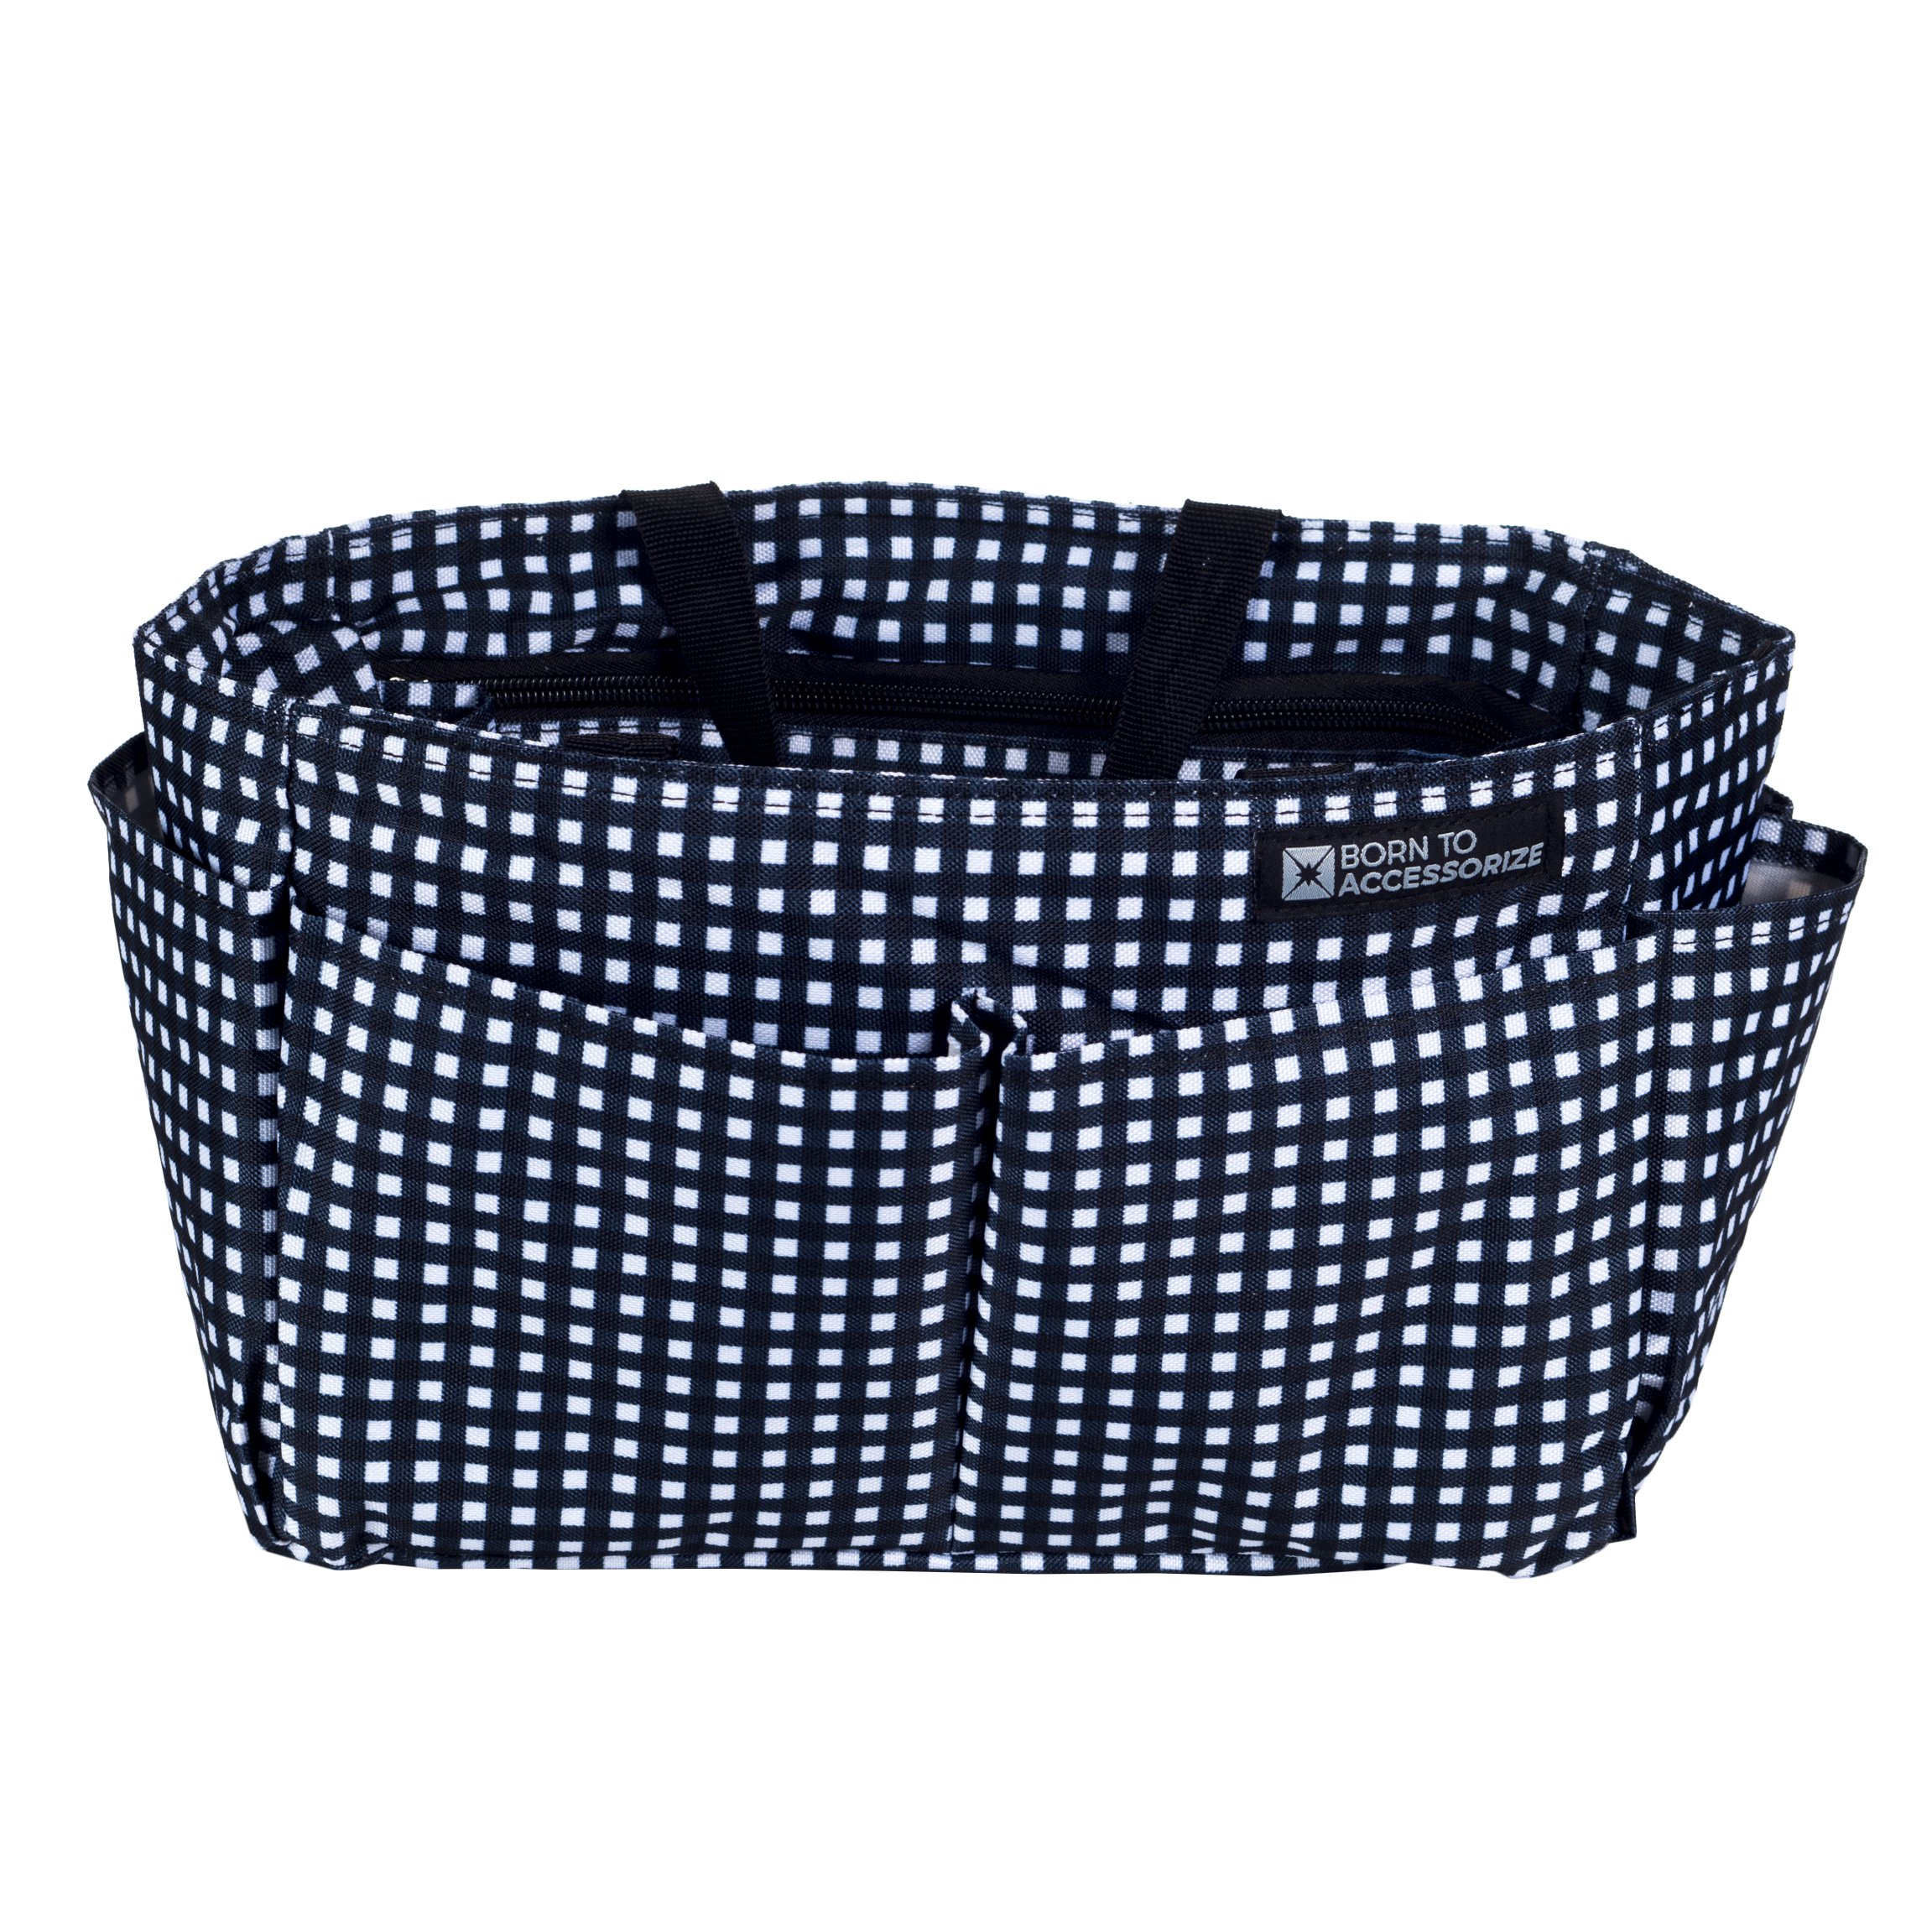 Premium Handbag Organizer - Perfect Purse Insert to Keep Everything Neat in Style (LV_L_Checkers) by Born to Accessorize